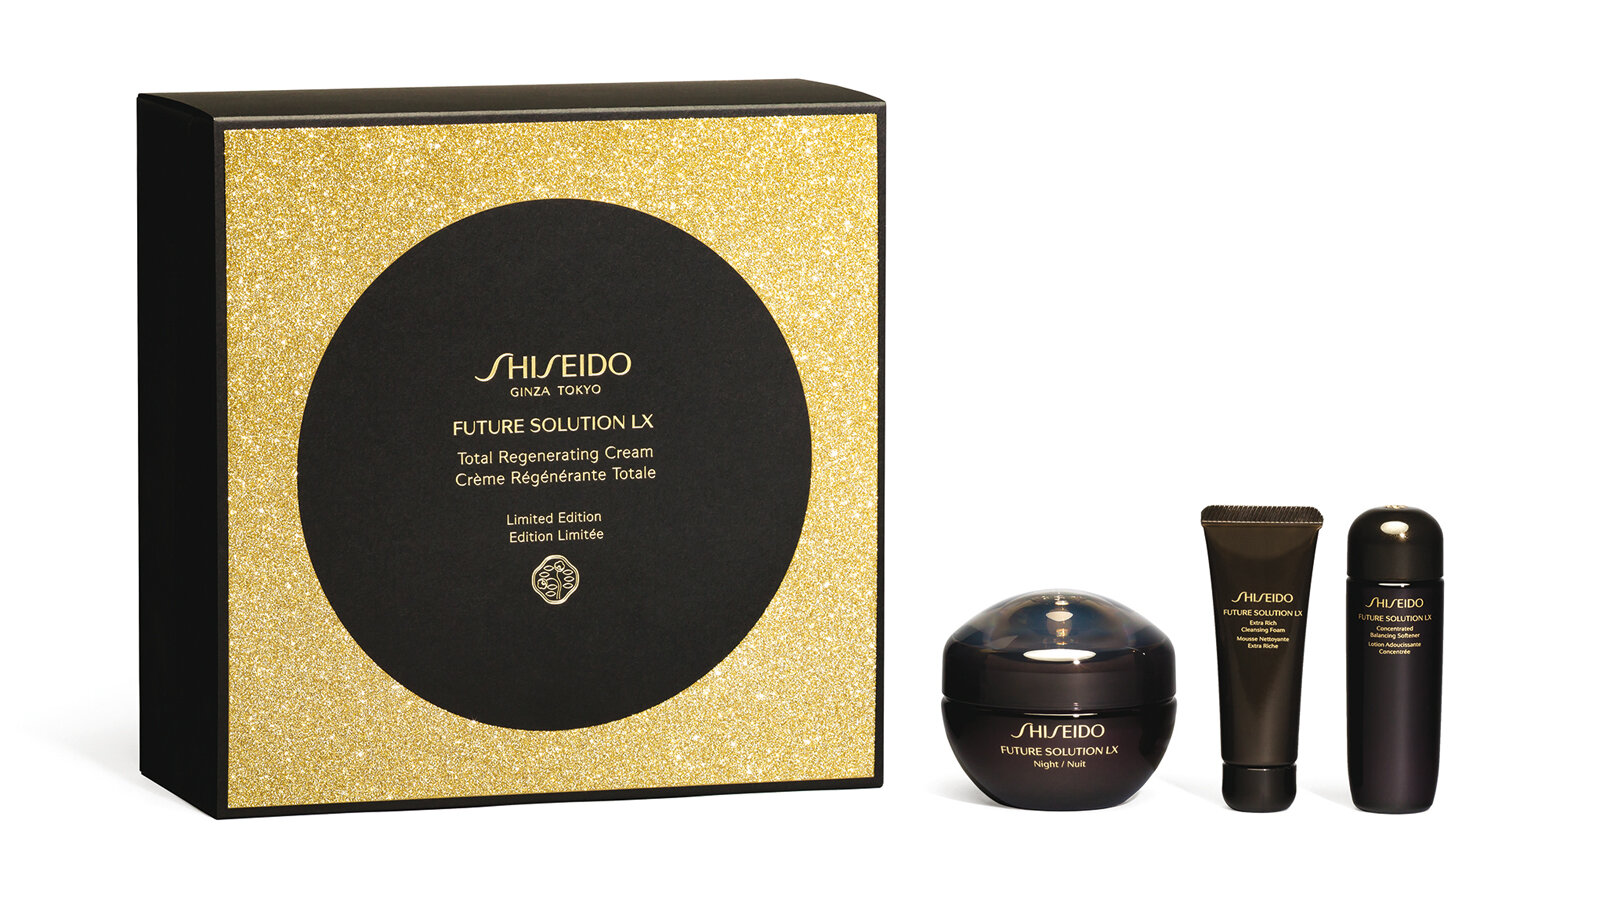 2-2S_SHISEIDO-coffret 10 ans -Design-Packaging.jpg